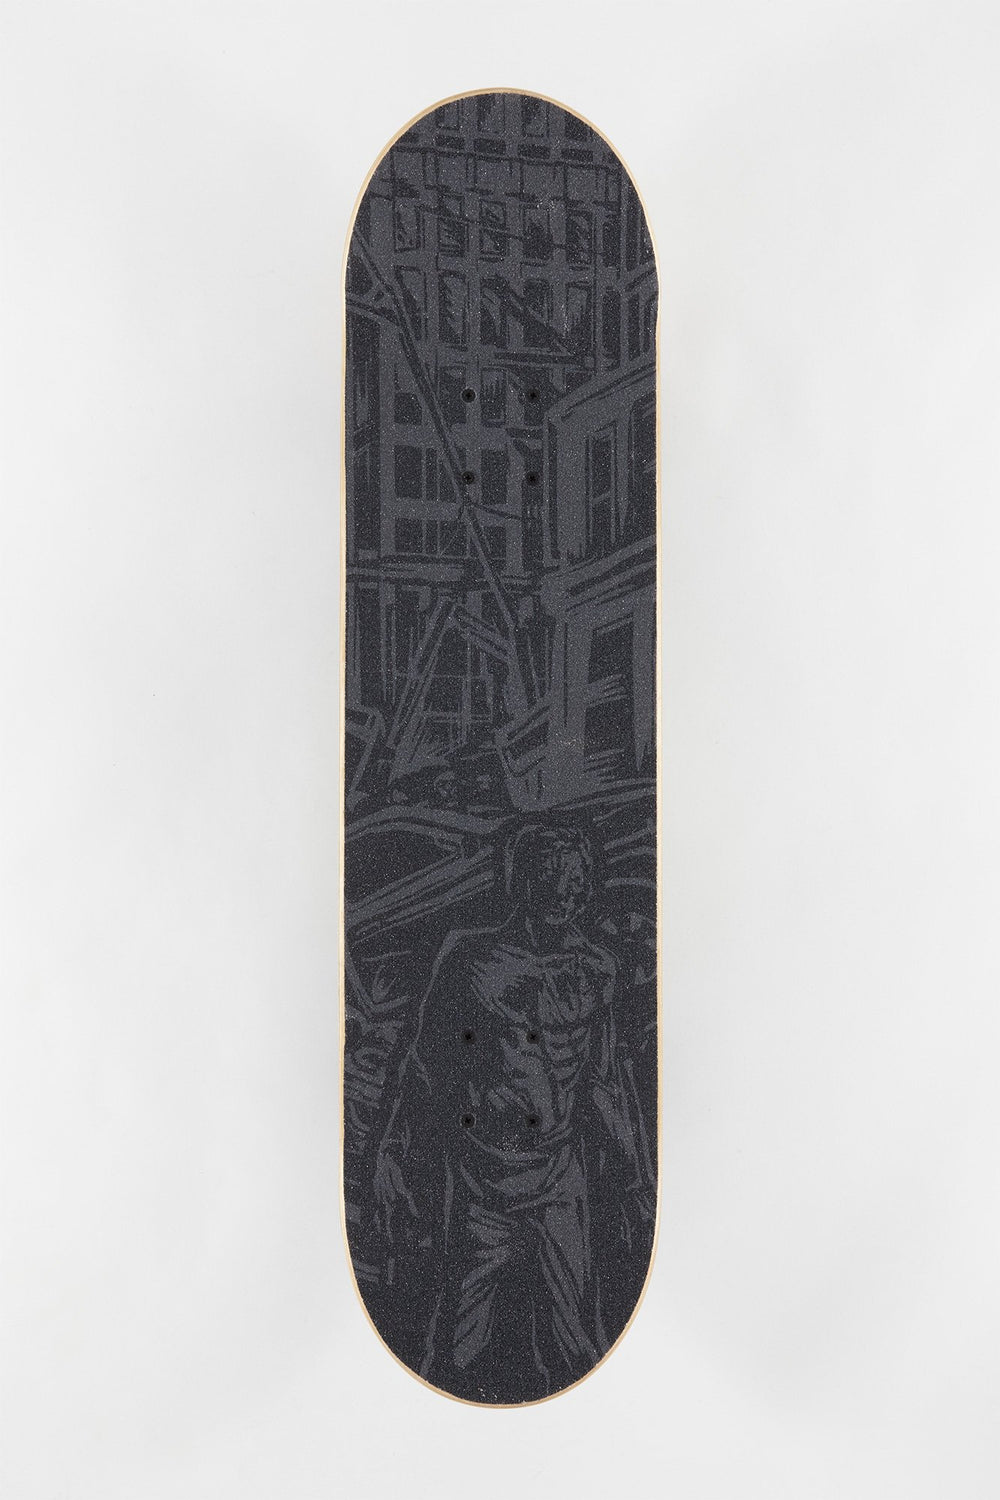 Zoo York Zombie Skateboard 8